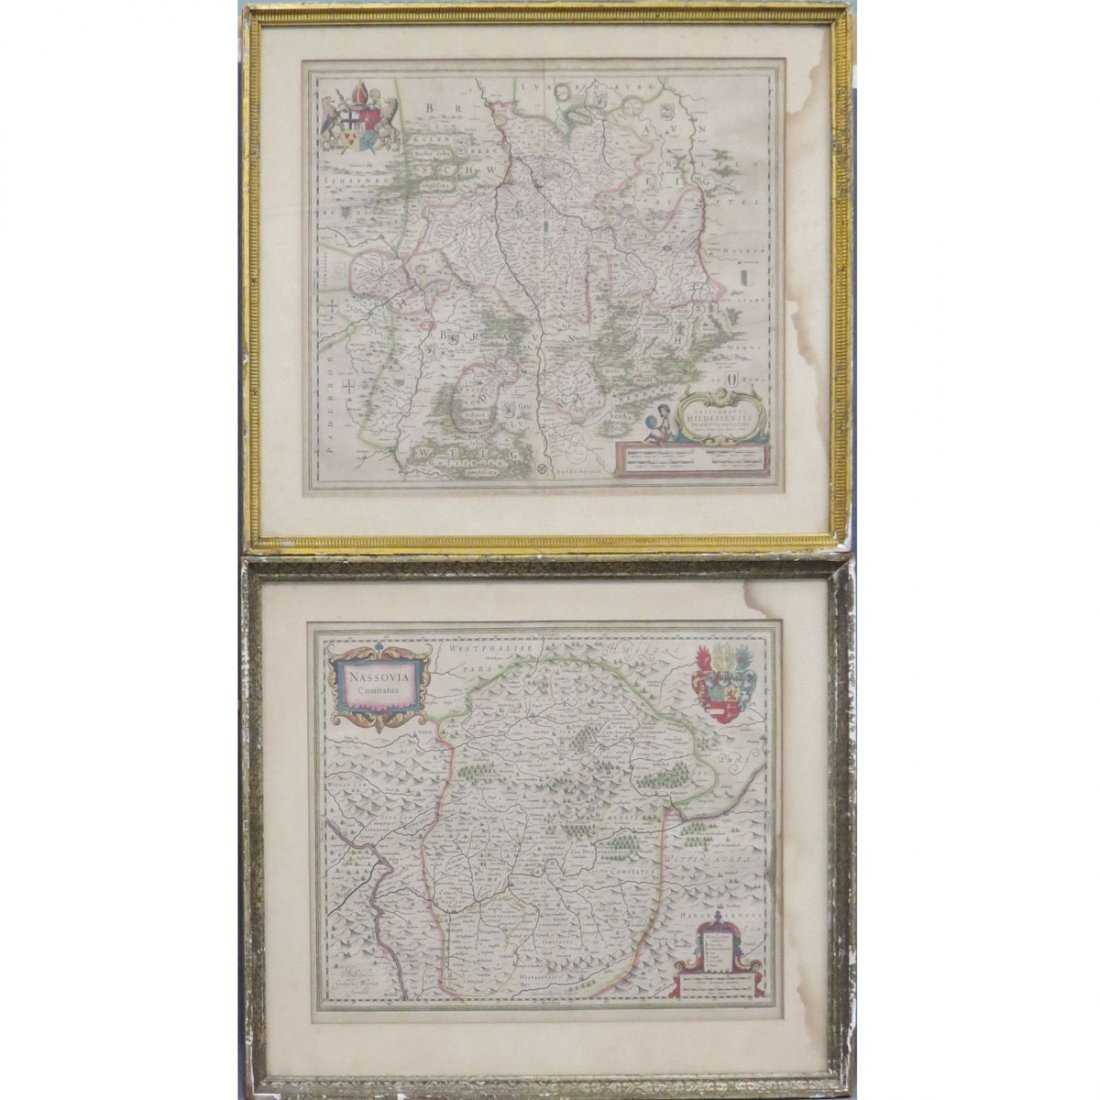 LOT (2) ITALIAN HAND COLORED ENGRAVED MAPS